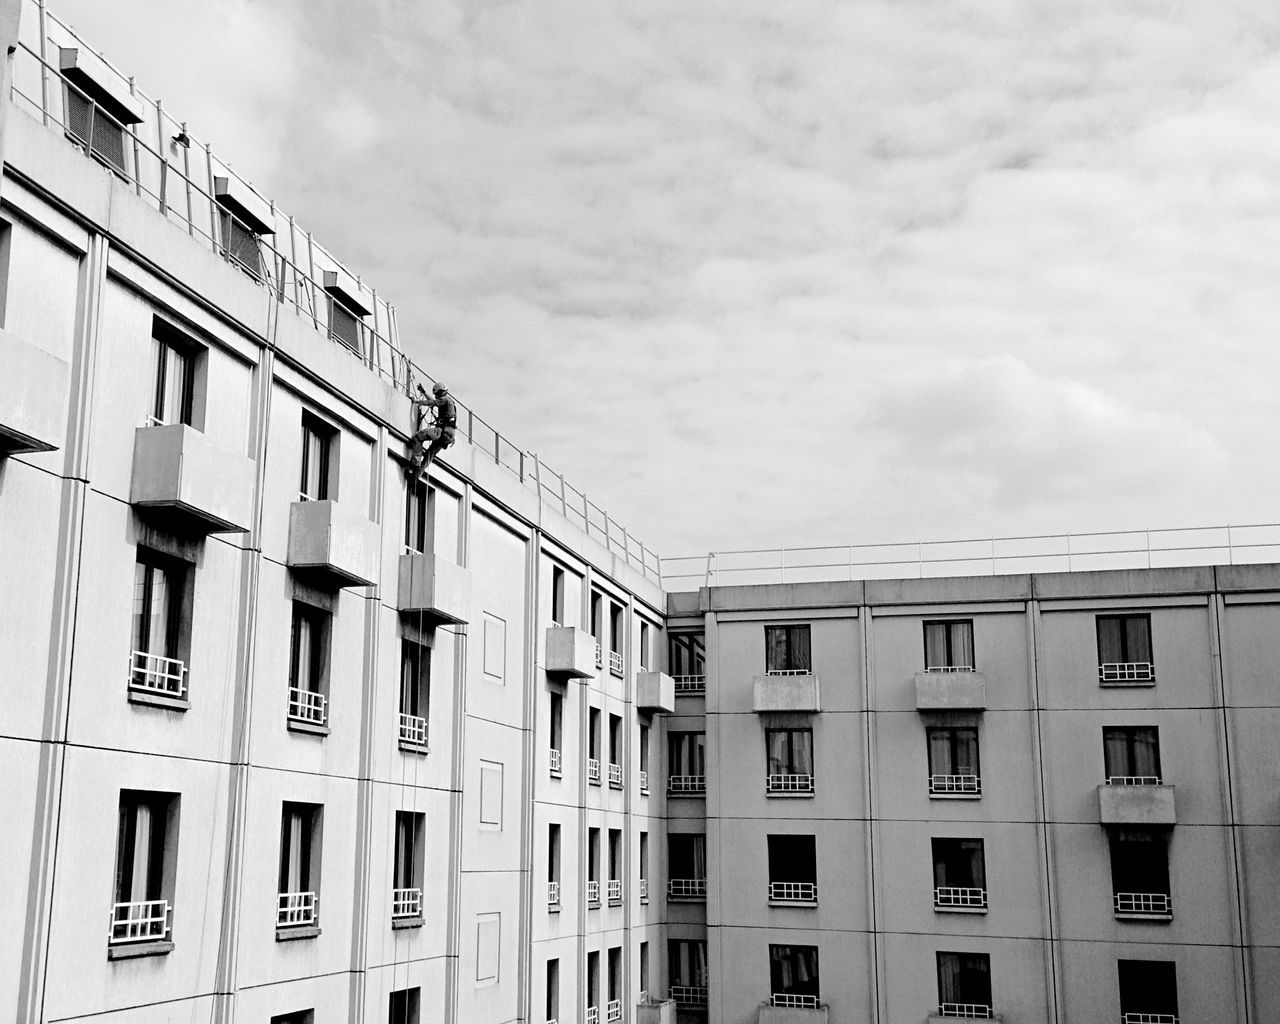 building exterior, architecture, built structure, window, residential building, outdoors, sky, no people, low angle view, day, city, cloud - sky, residential